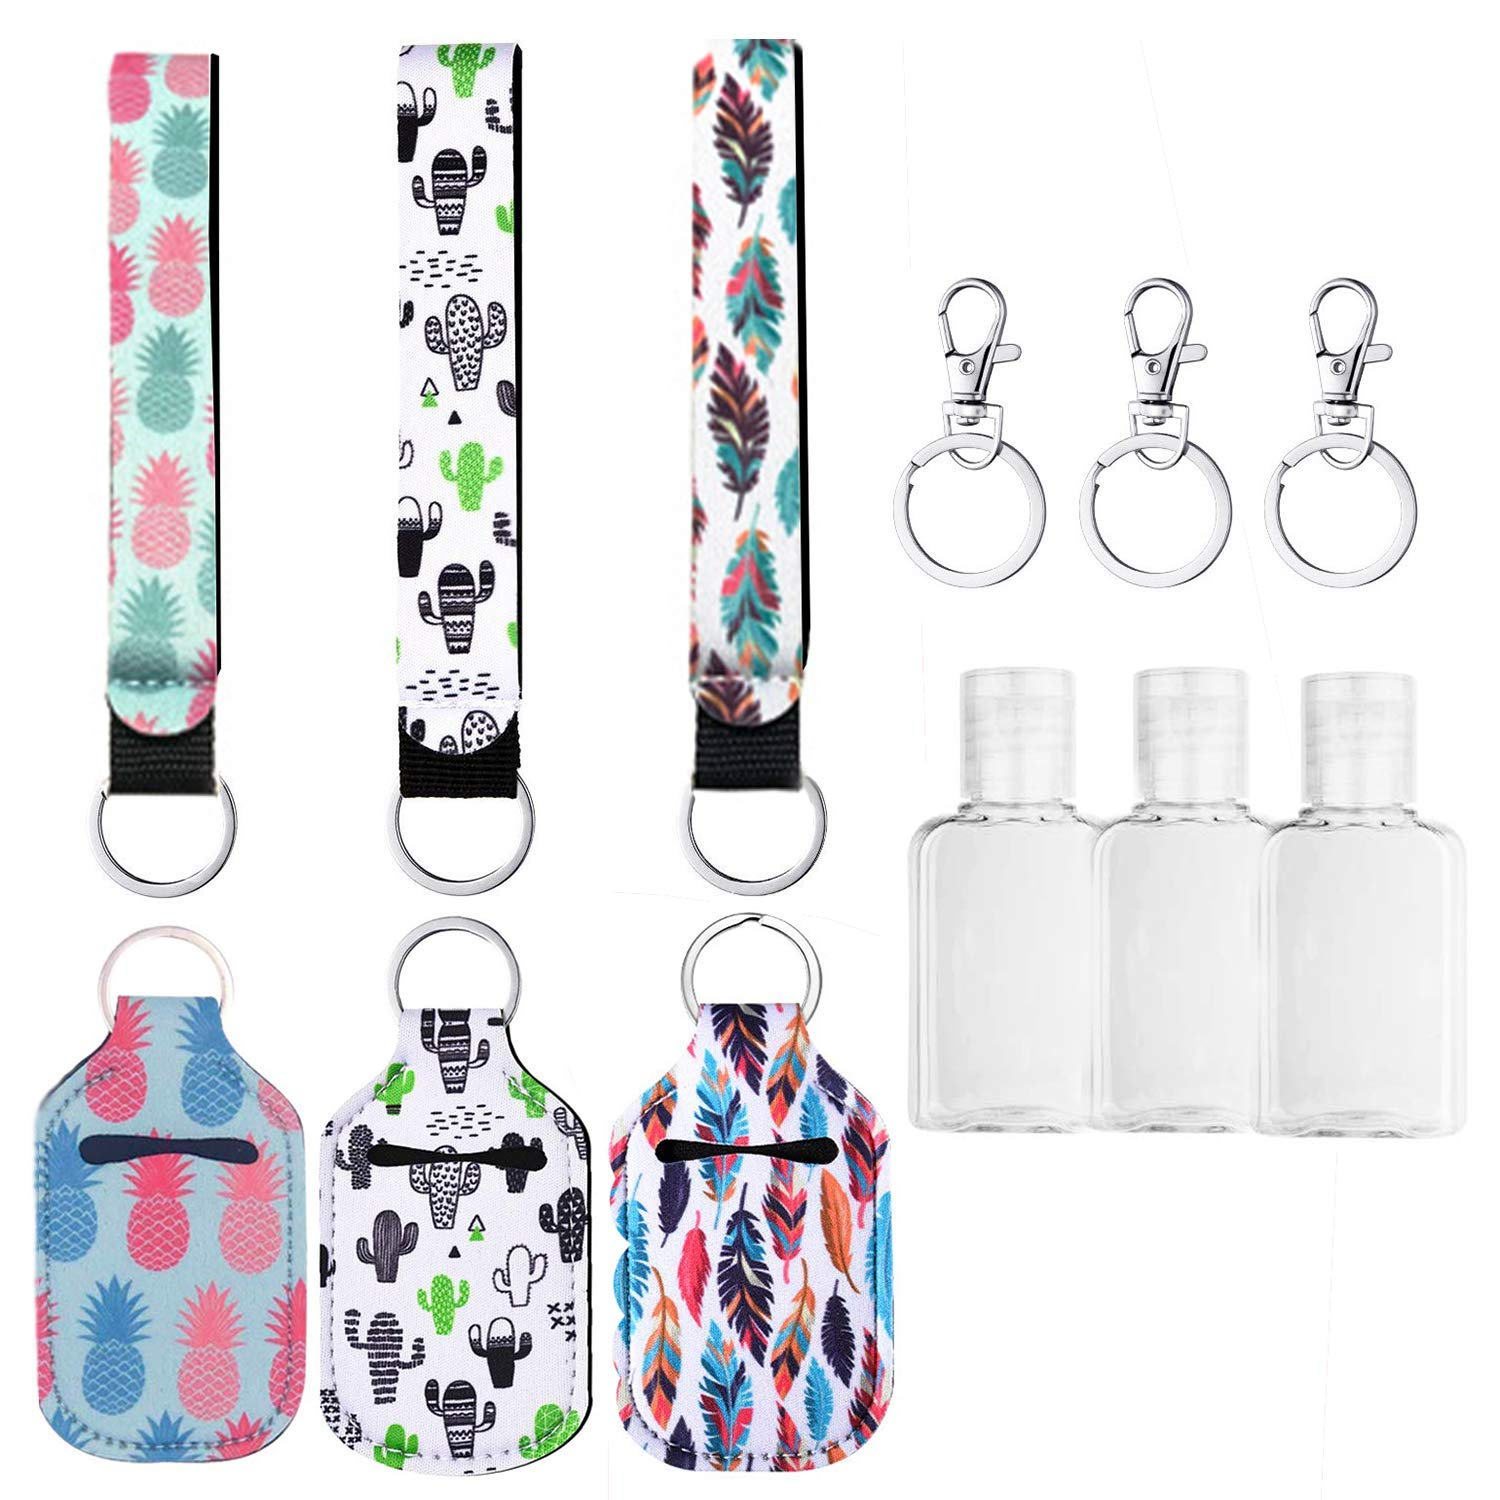 Neoprene Lanyard Hand Sanitizer Holder with Empty Bottle Flip Cap Mini hand Sanitizer Holder Keychain 1 OZ